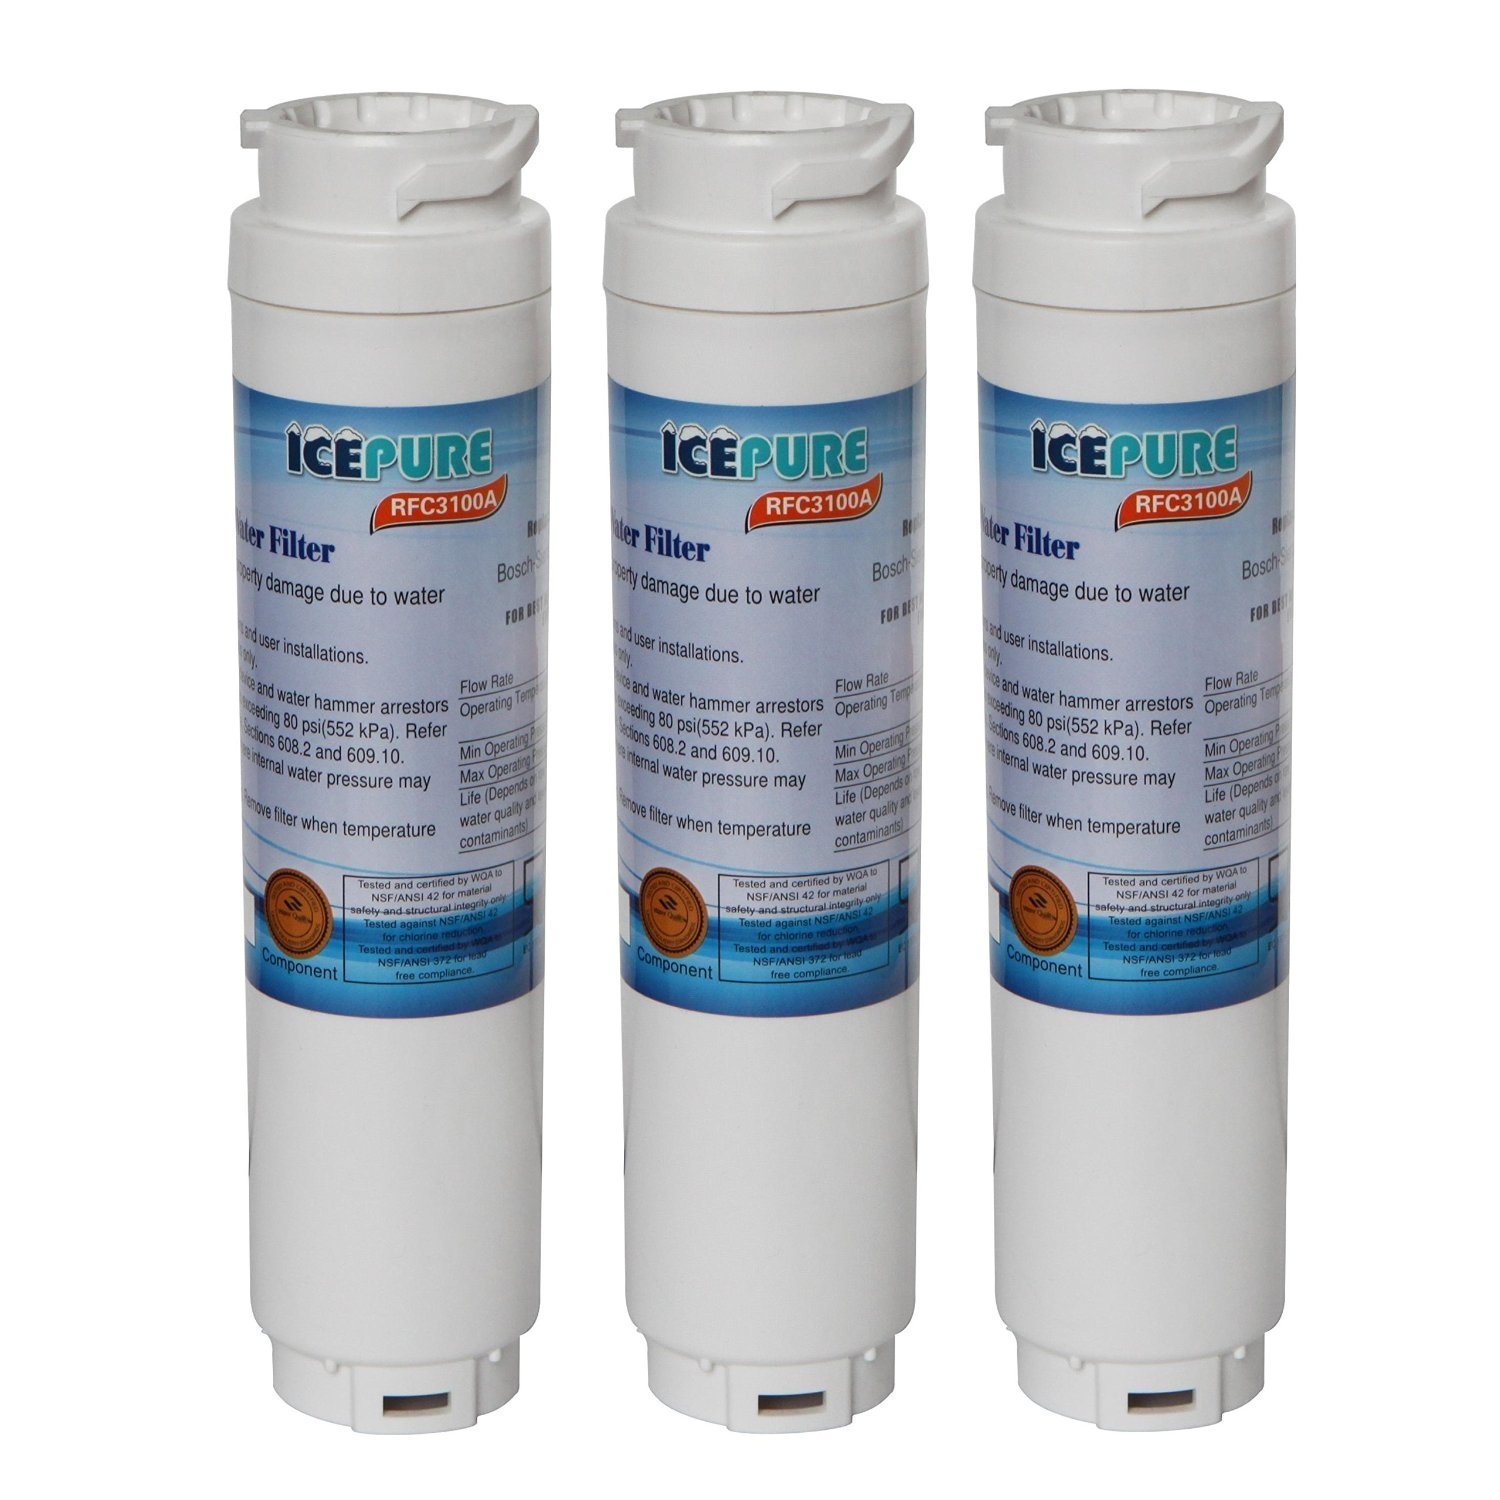 3 Pack Bosch Ultra Clarity Refrigerator Water Filter Replacement by IcePure RFC3100A